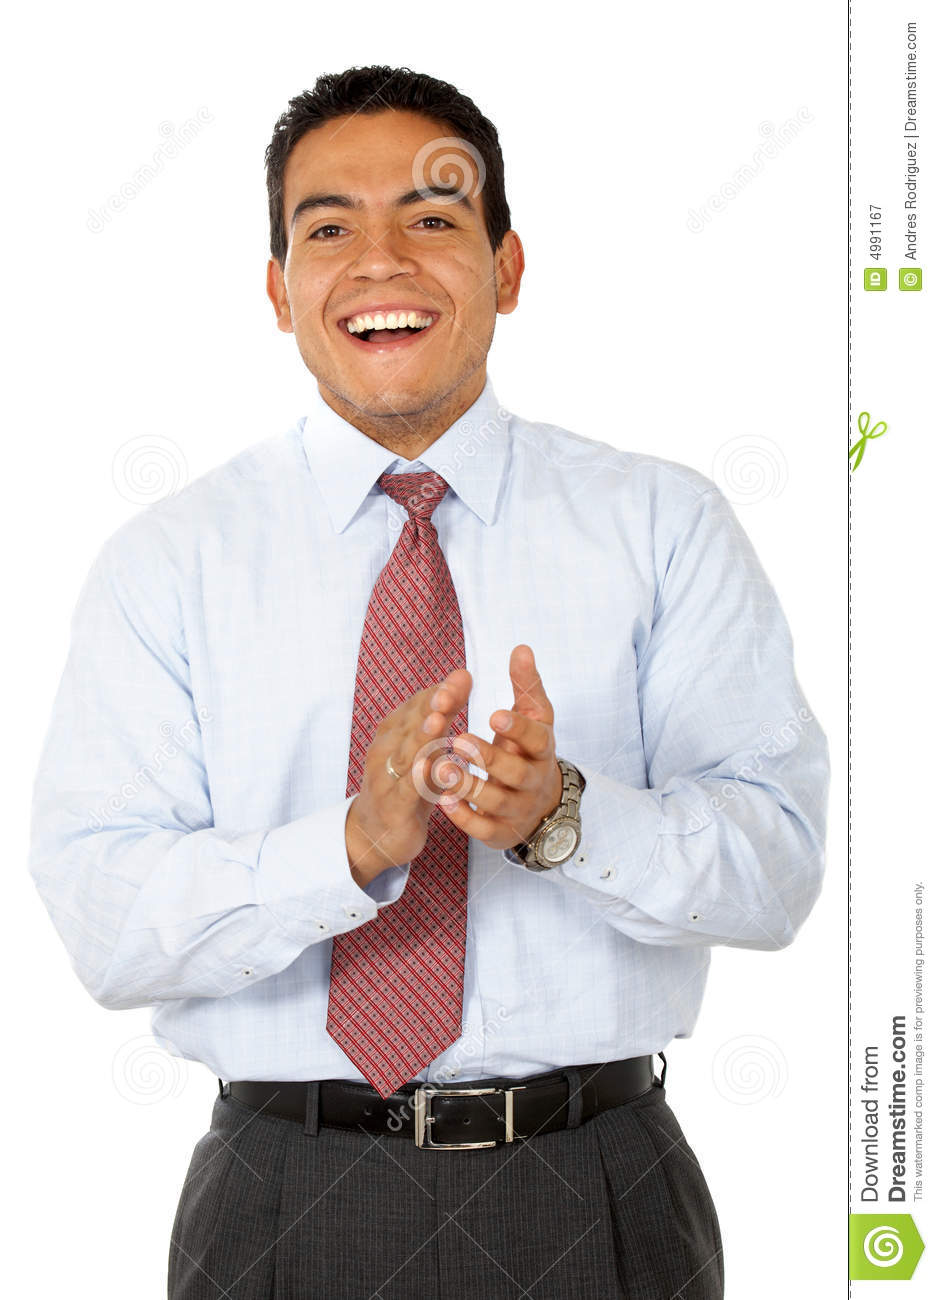 Man clapping